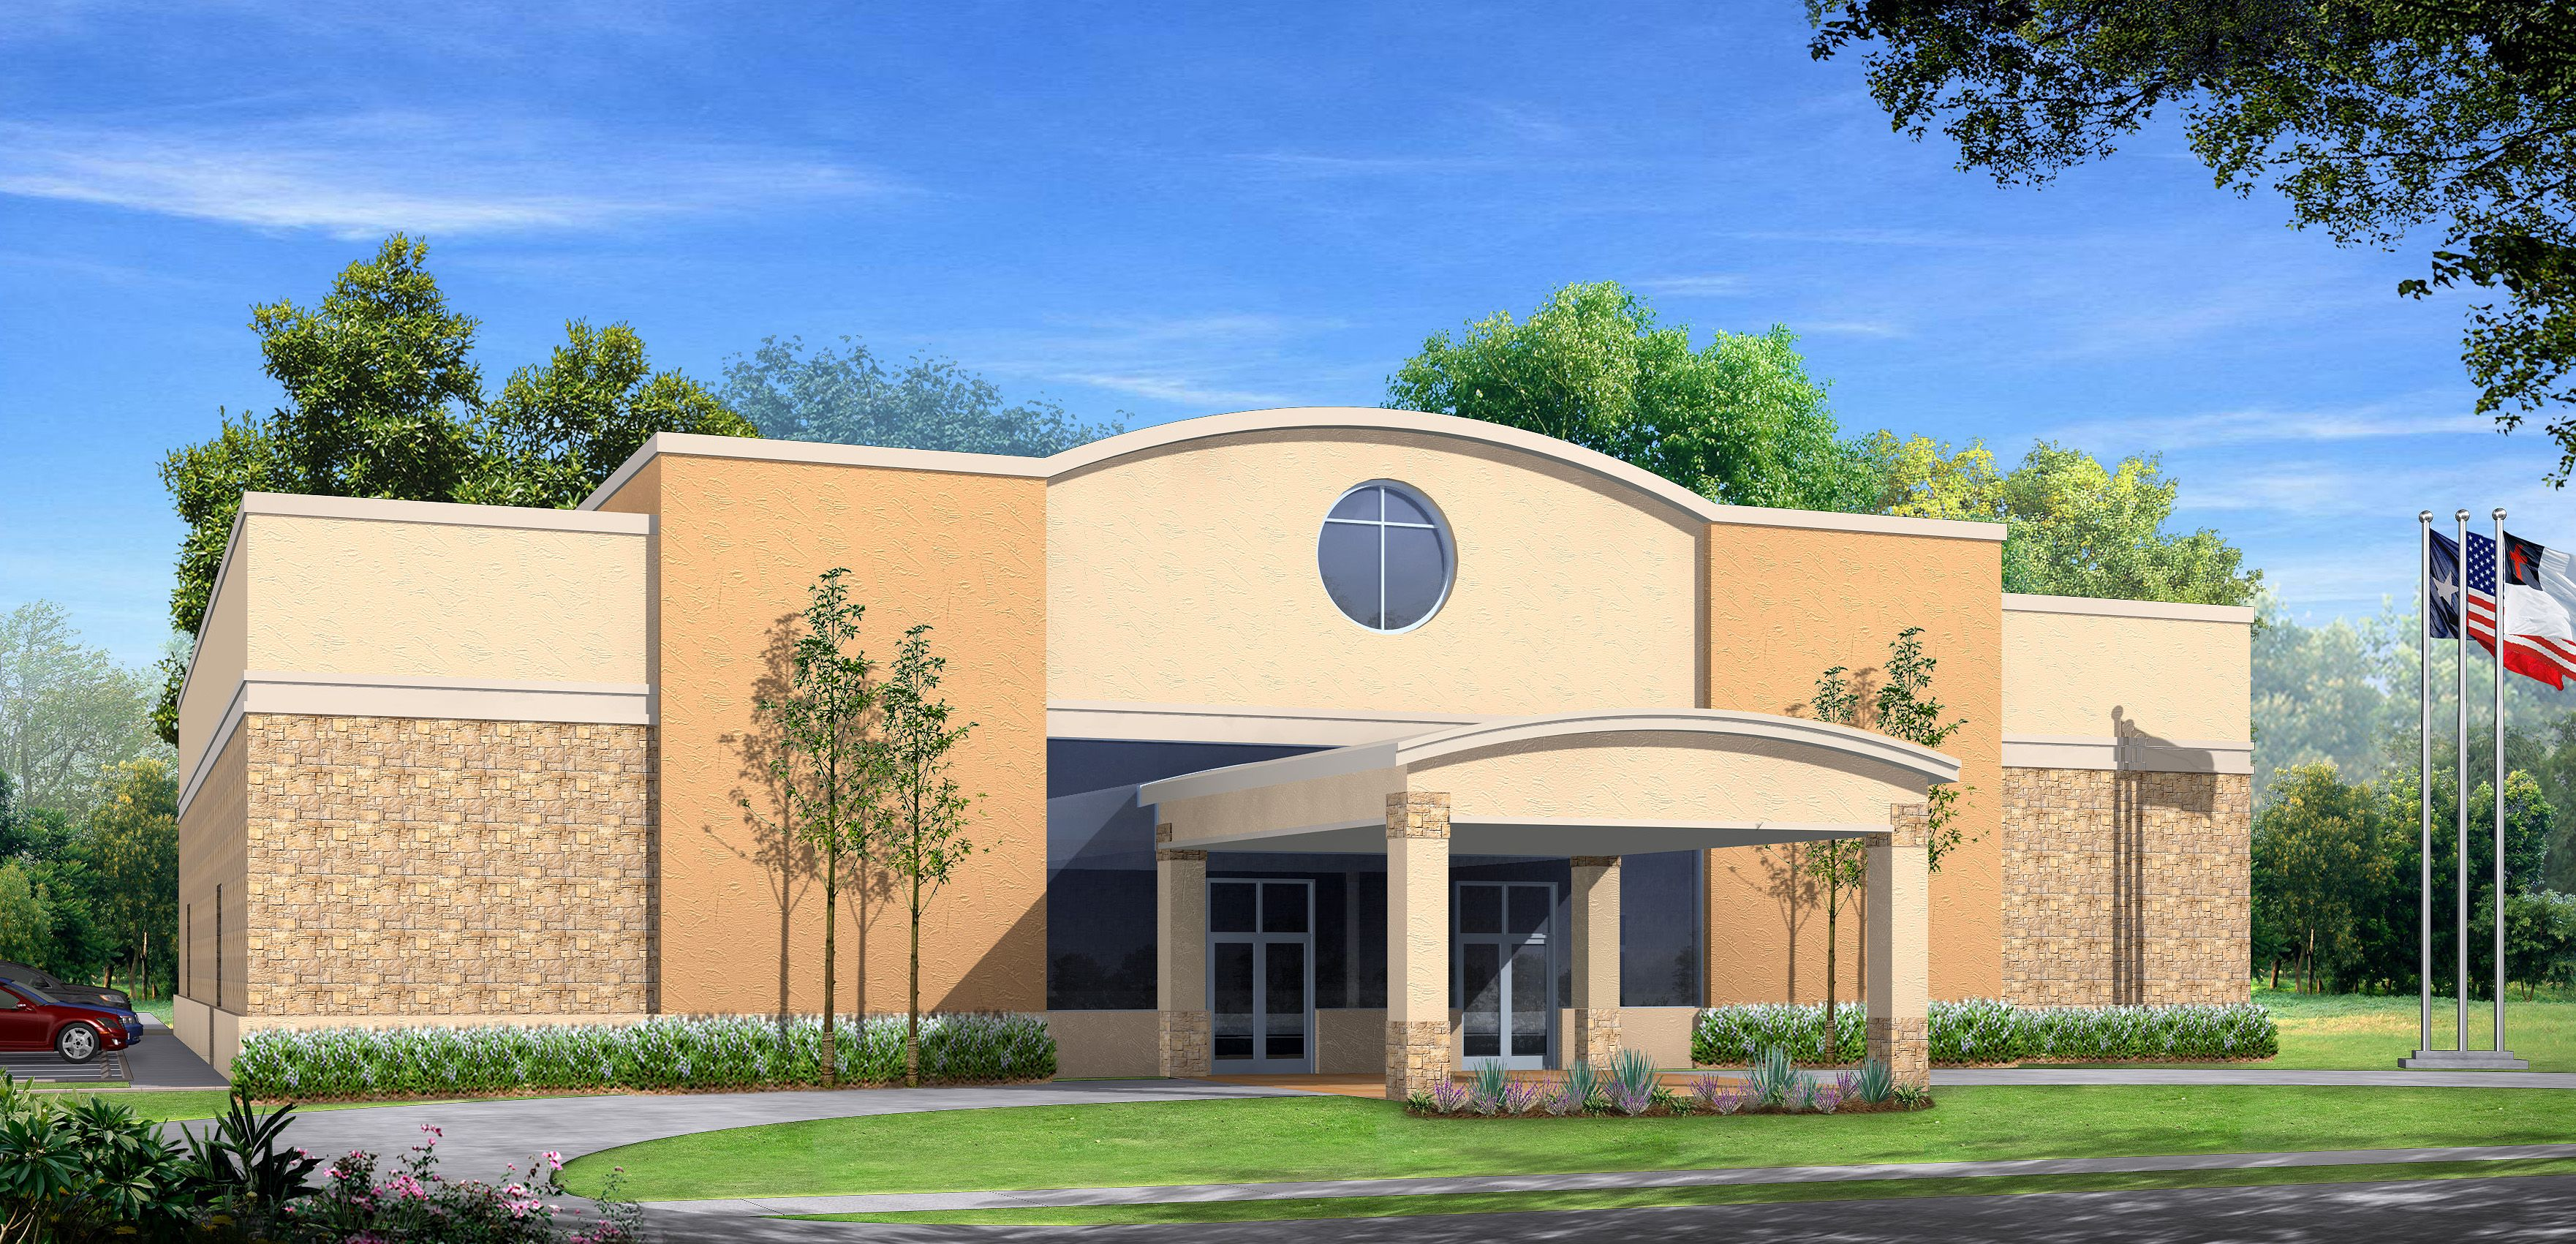 Church building designs alvin missionary baptist church for New building design